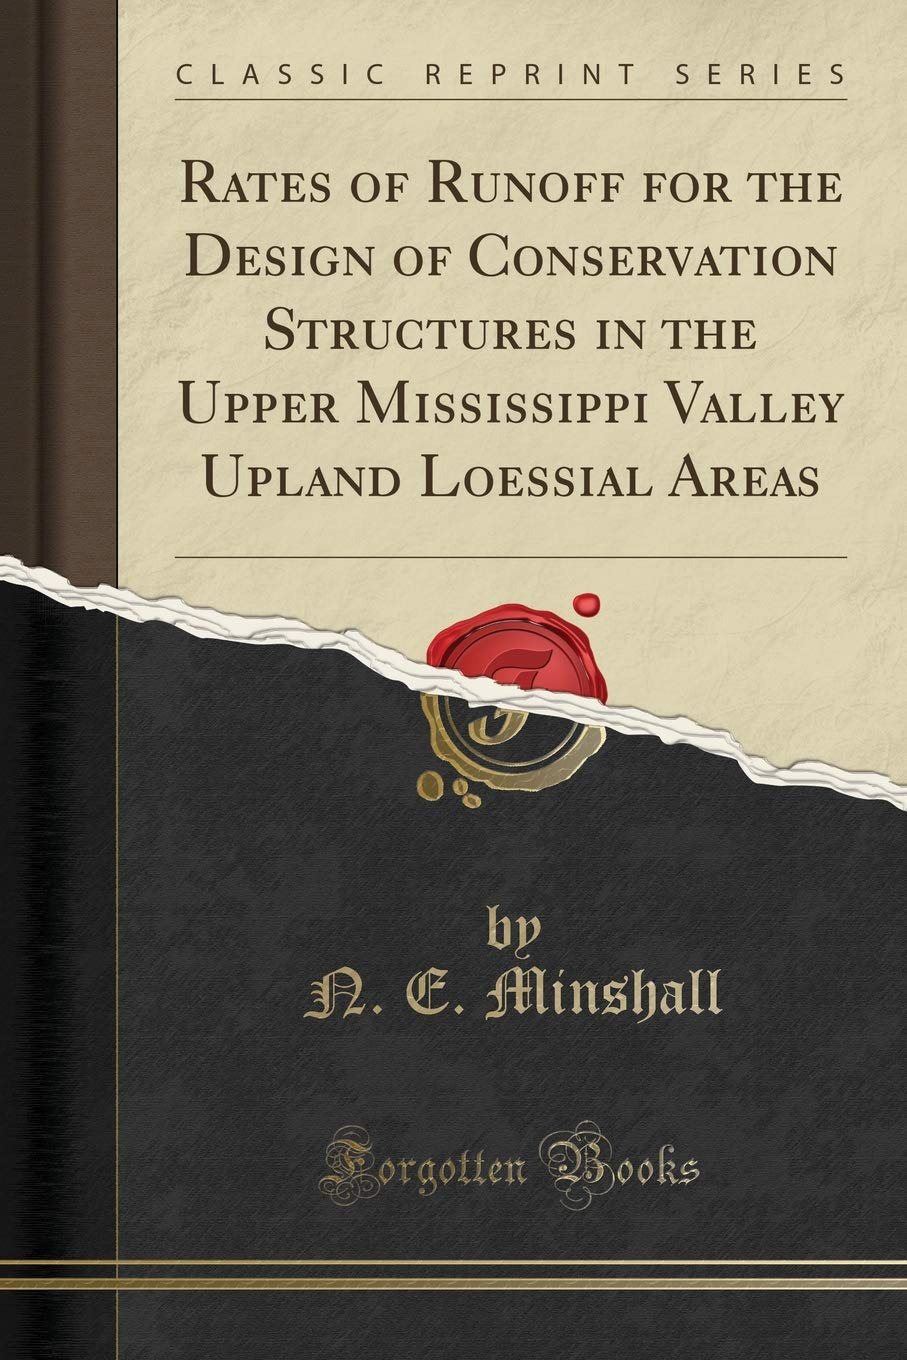 Download Rates of Runoff for the Design of Conservation Structures in the Upper Mississippi Valley Upland Loessial Areas (Classic Reprint) ebook